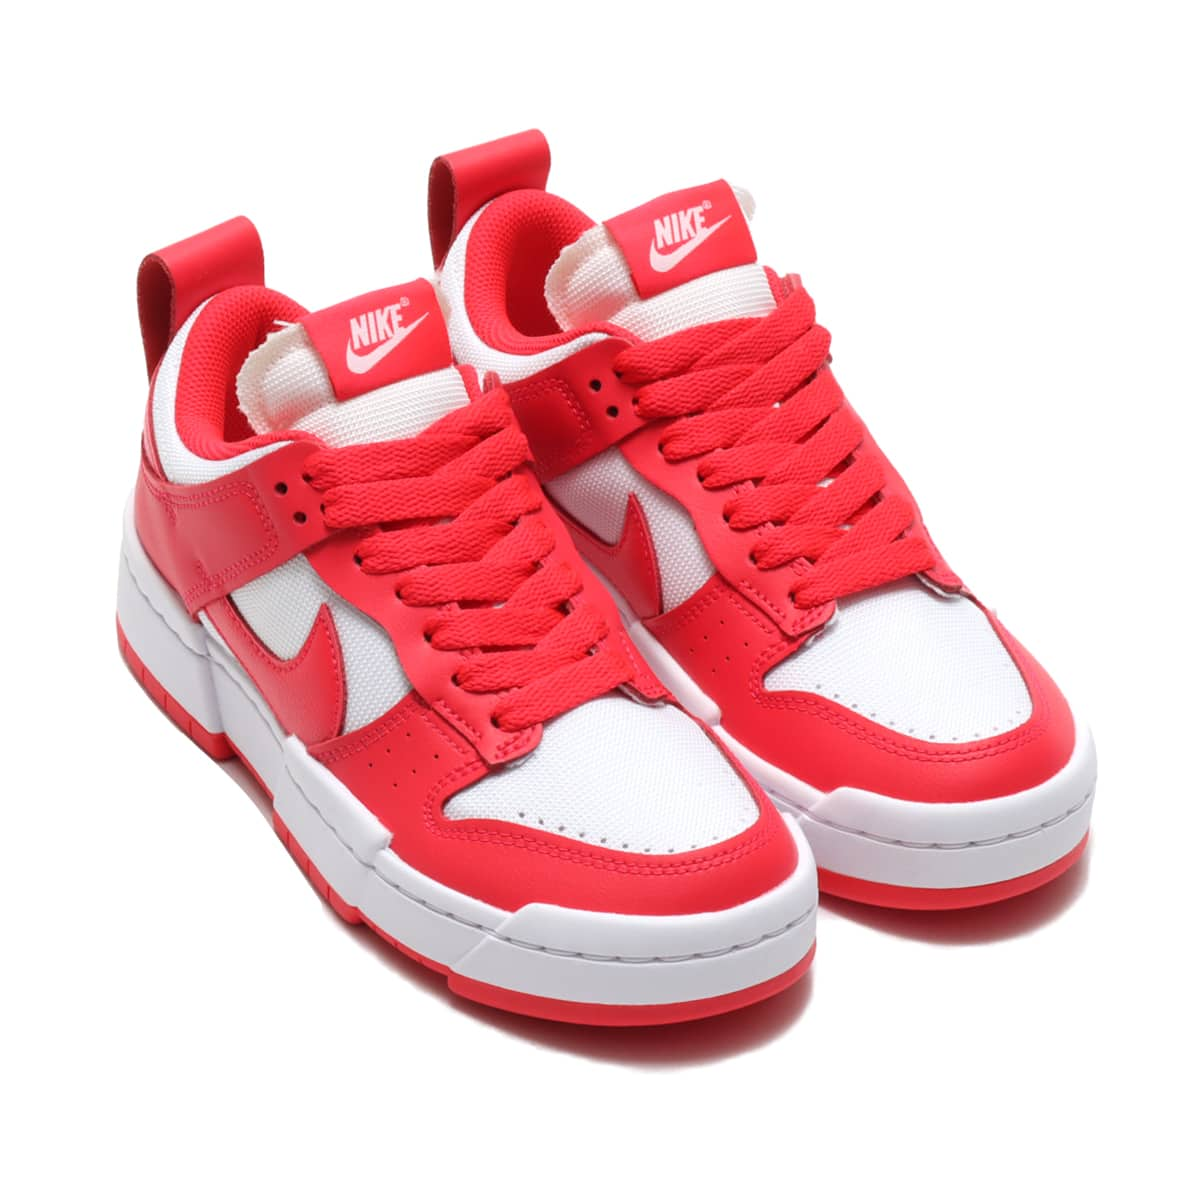 NIKE W DUNK LOW DISRUPT SIREN RED/SIREN RED-WHITE 21SP-I_photo_large